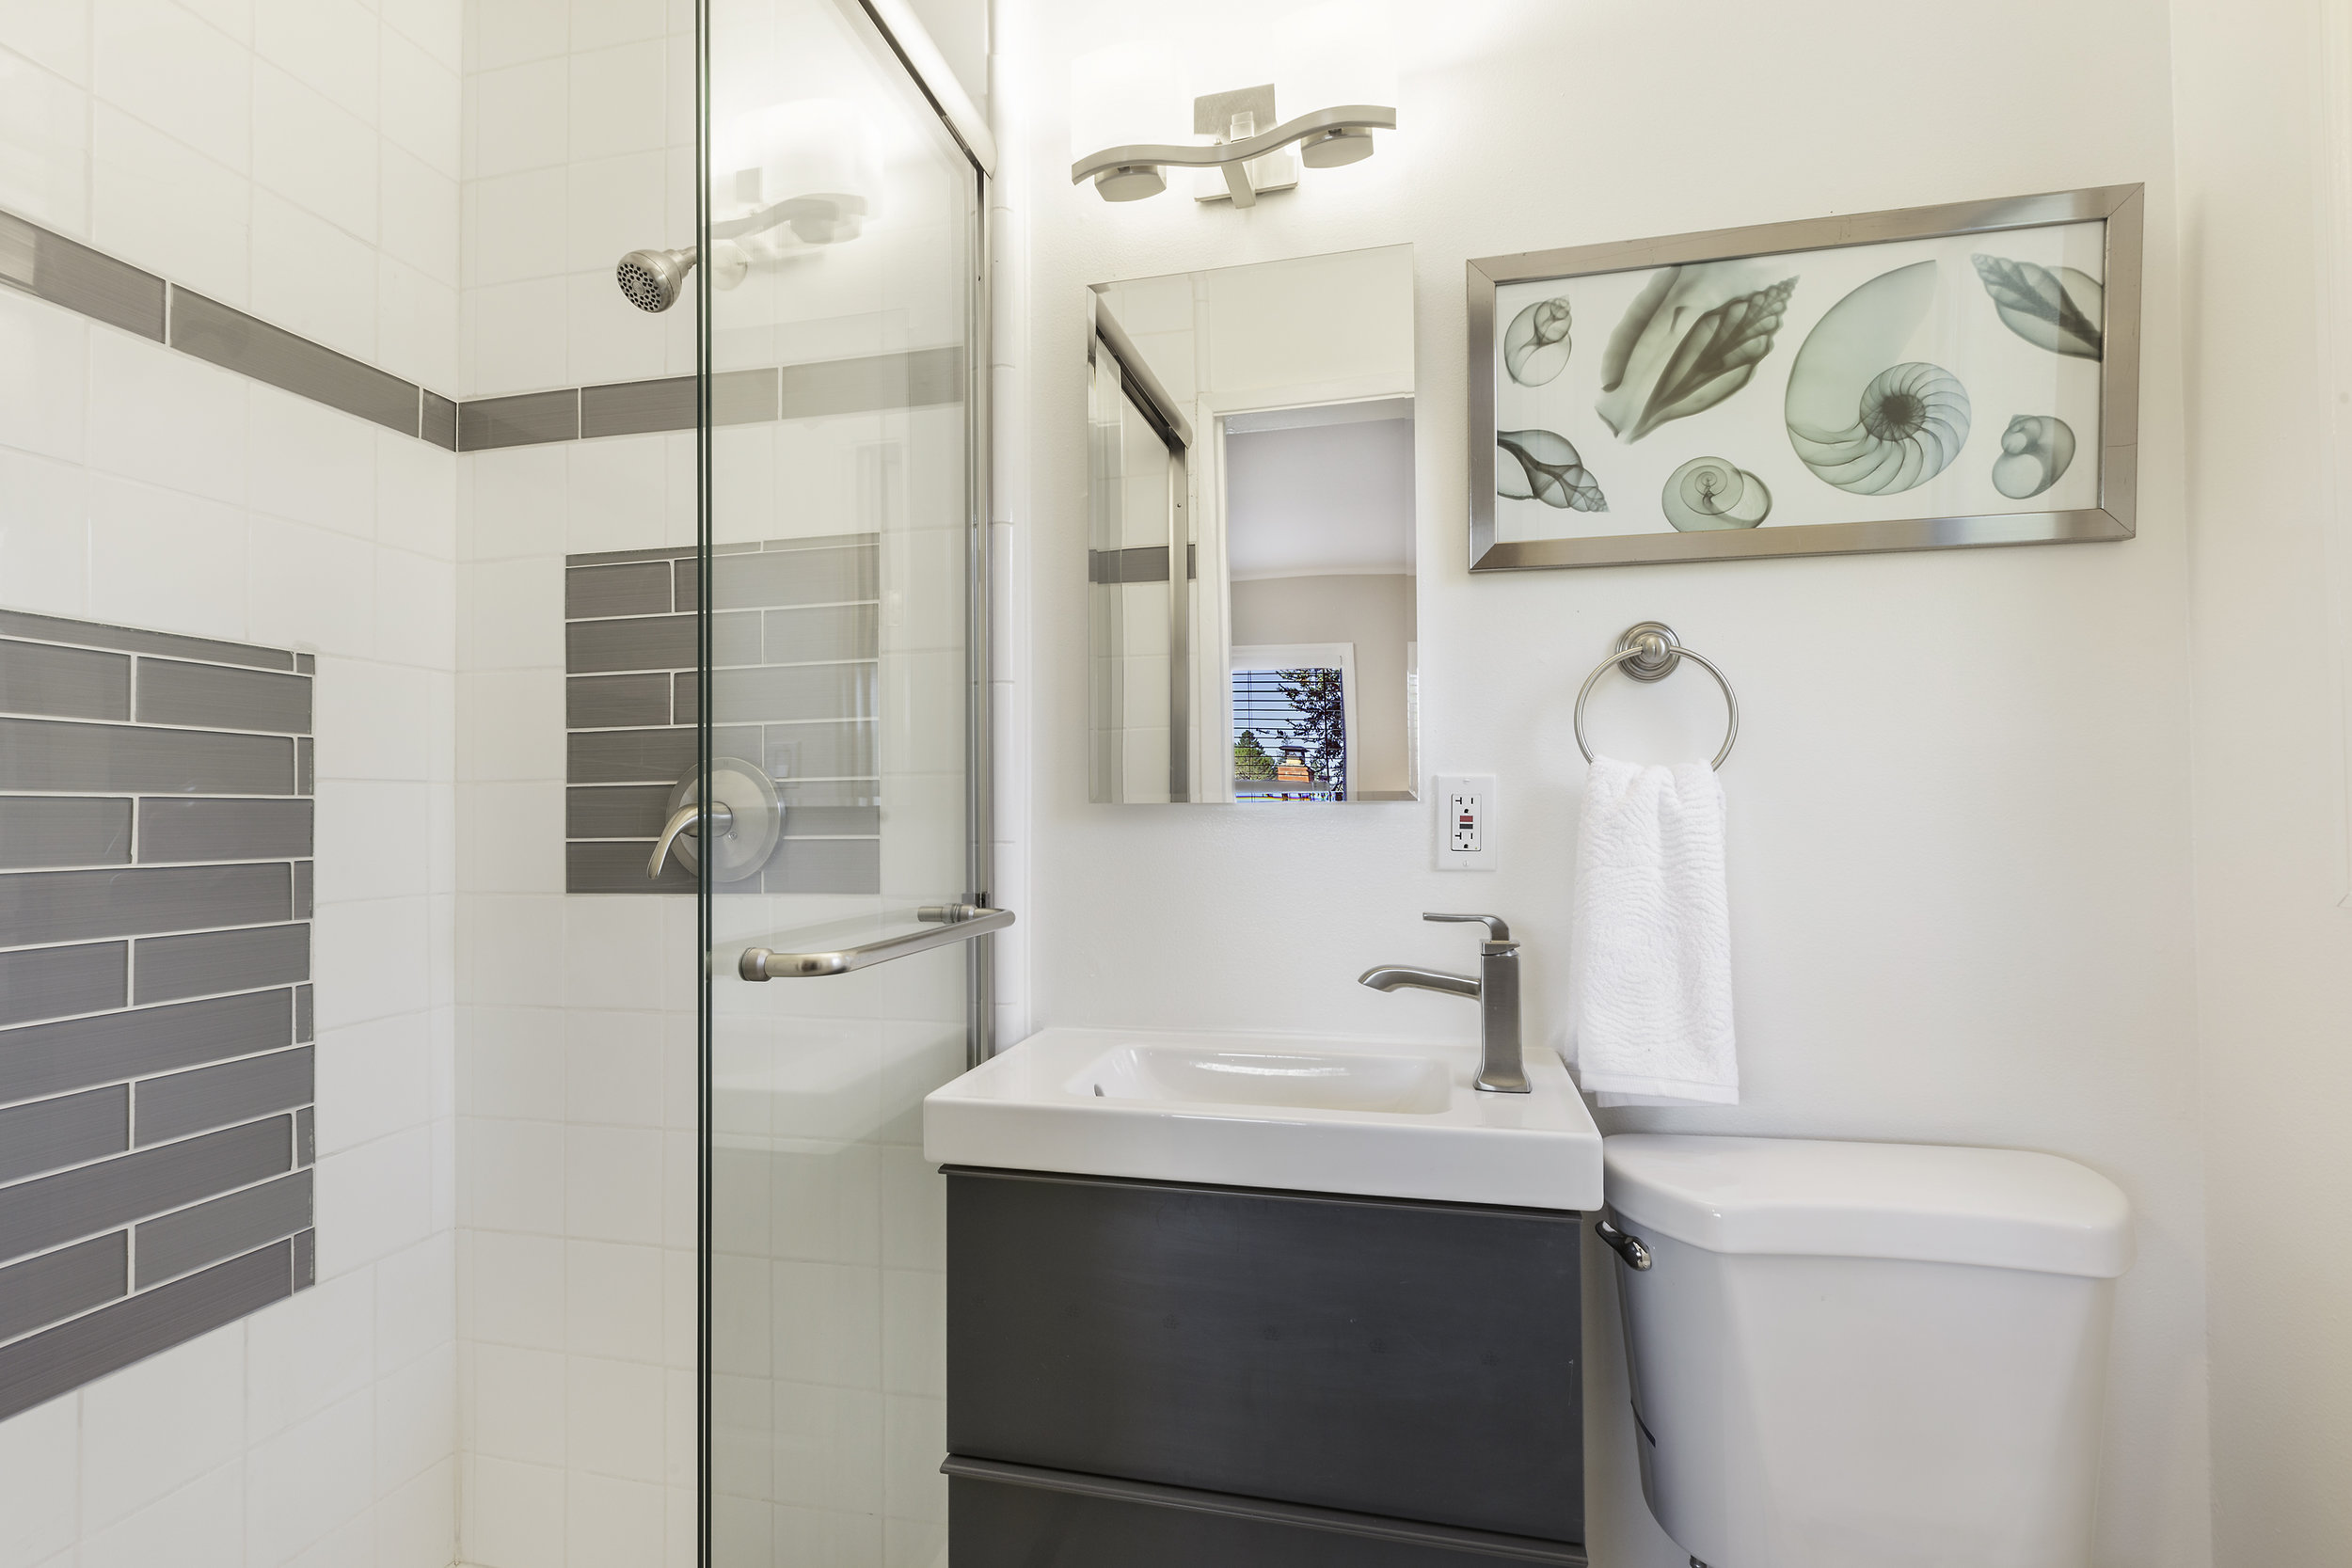 13-540-Midway-1bath-high-res.jpg